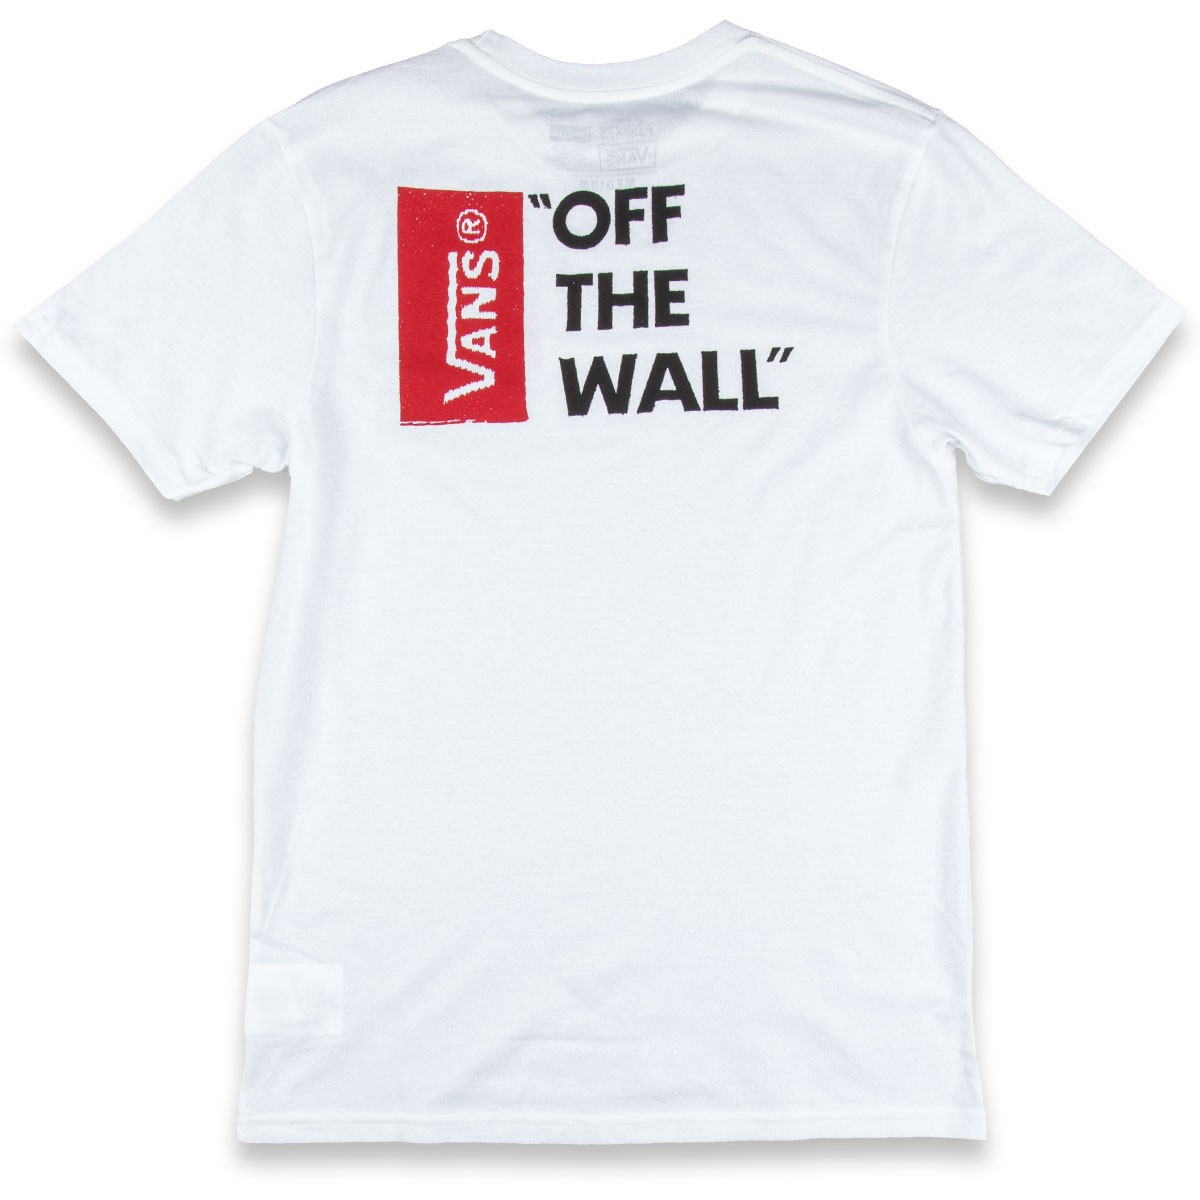 Off the wall ii t shirt white vans off the wall ii t shirt white amipublicfo Choice Image